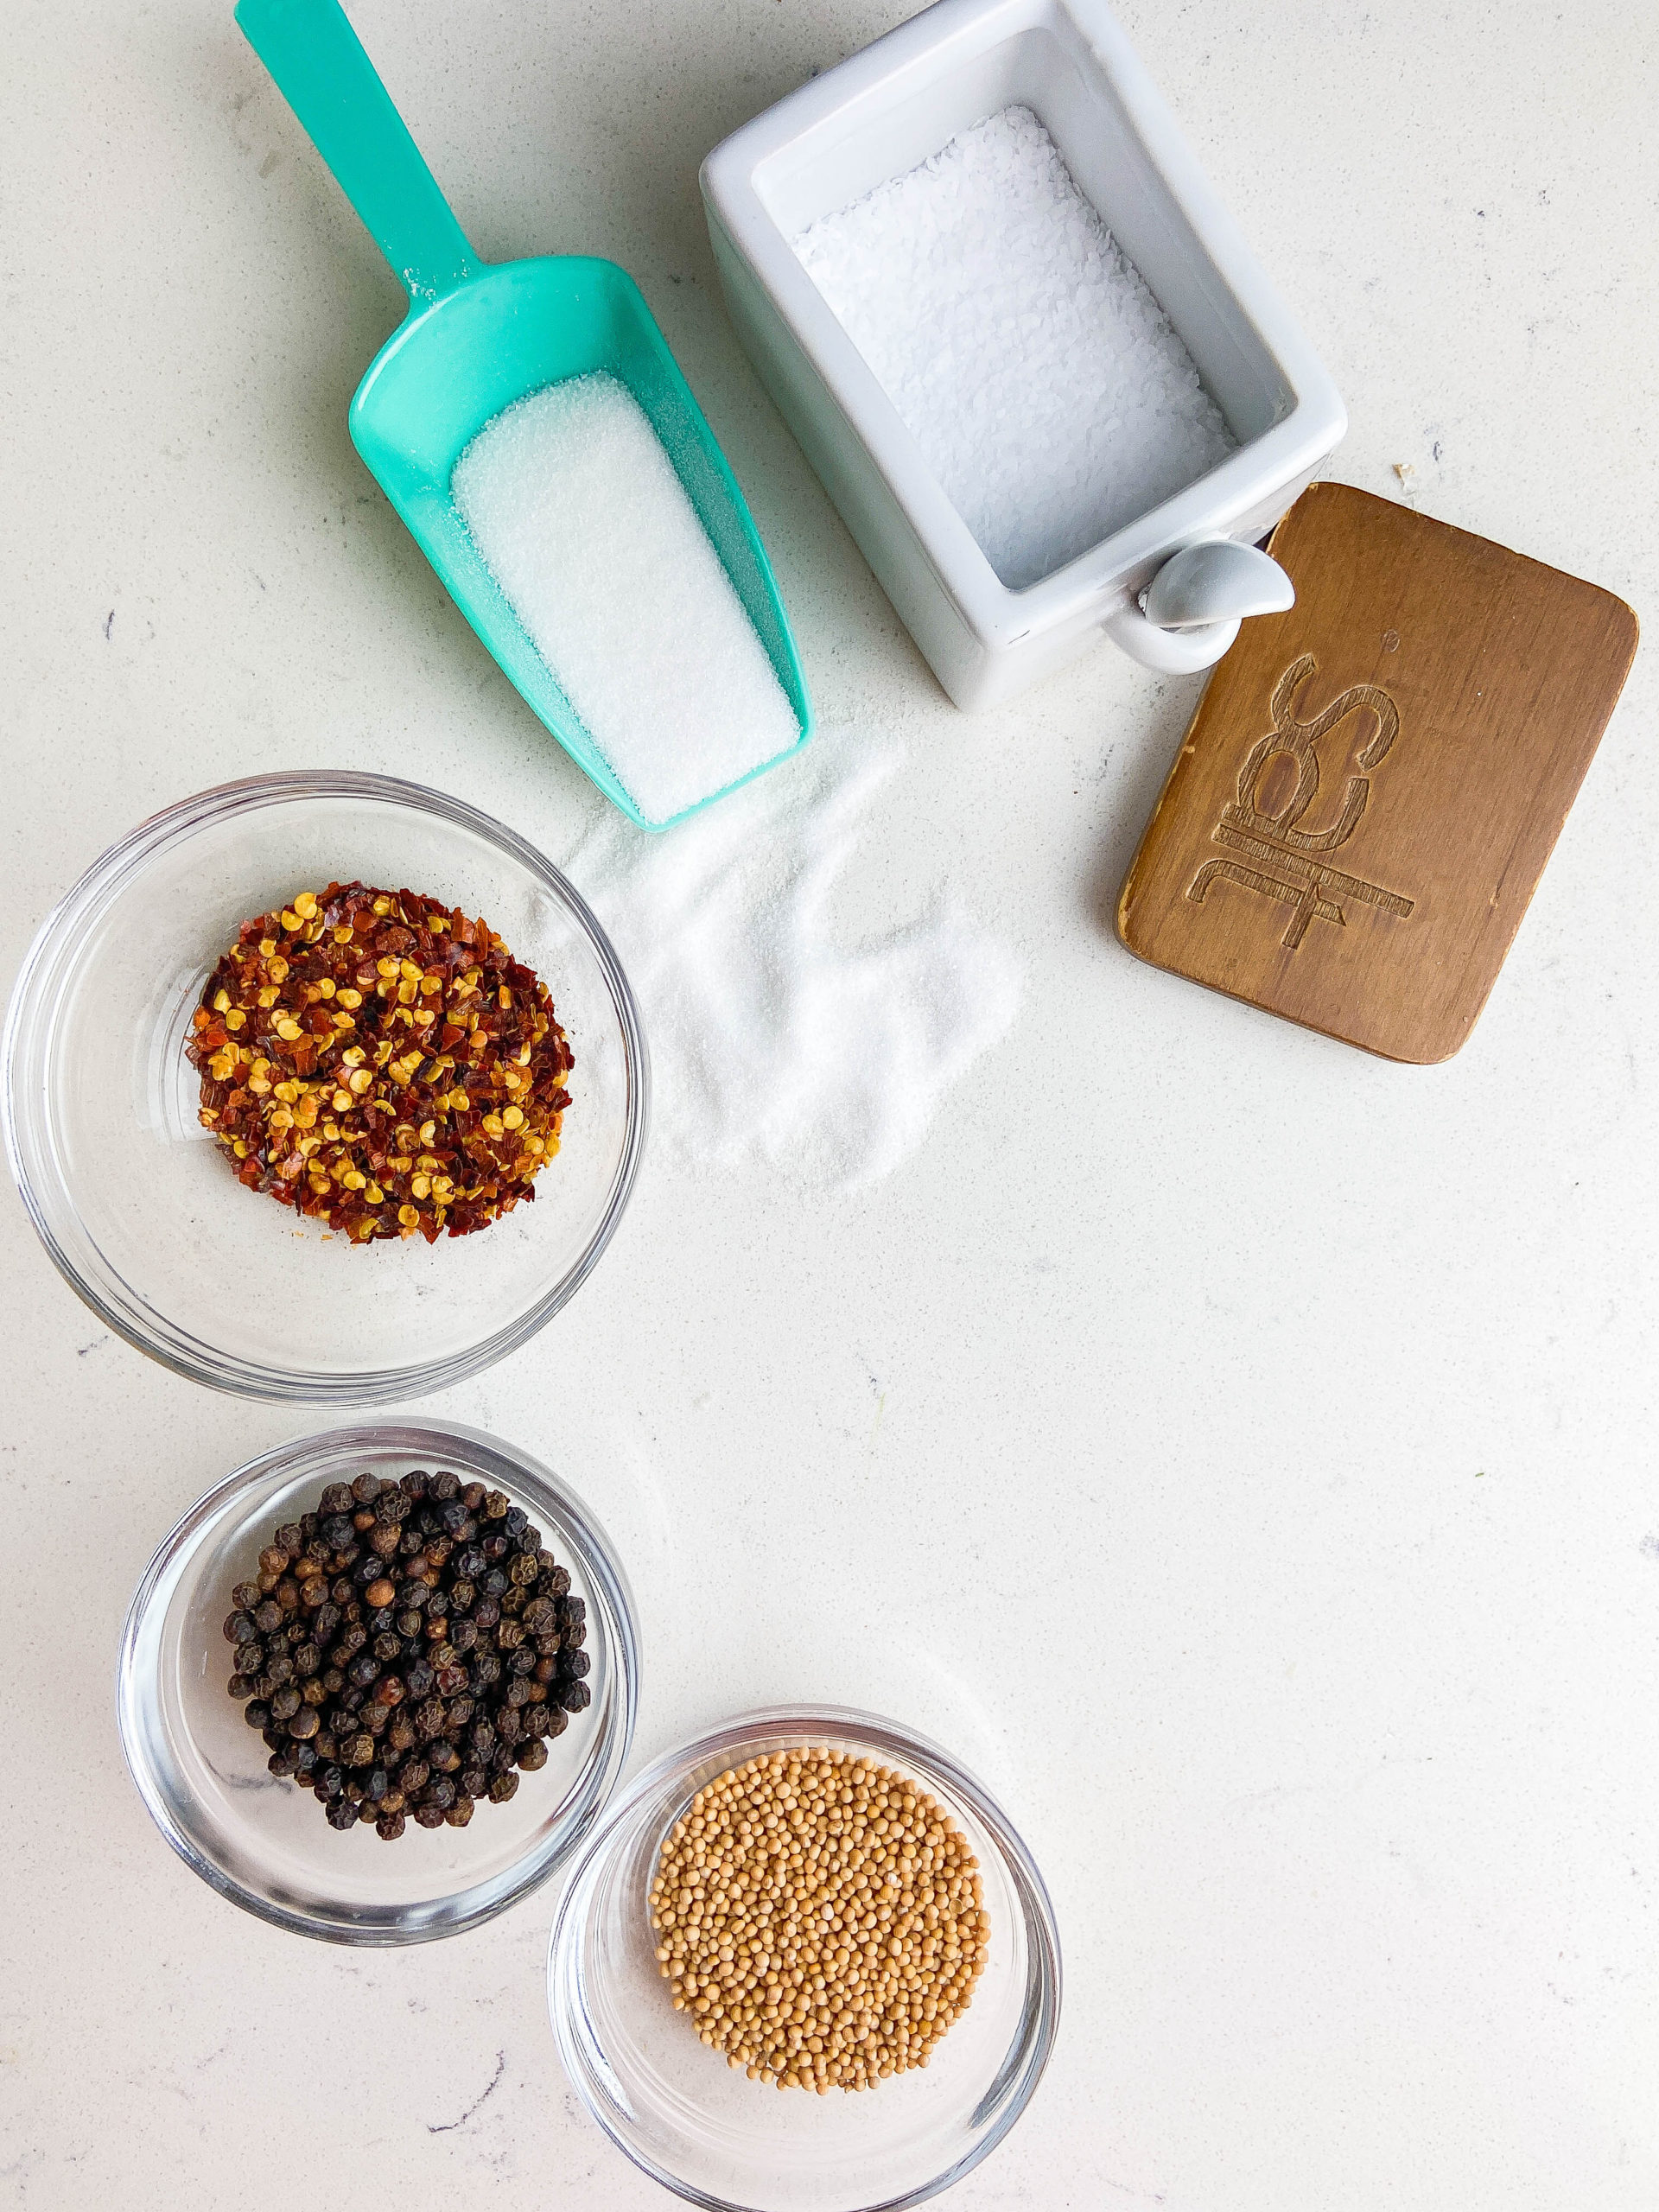 Mustard seeds, black peppercorns, crushed red peppers in glass bowls. Sugar in a teal scooper and salt in a white salt cellar.